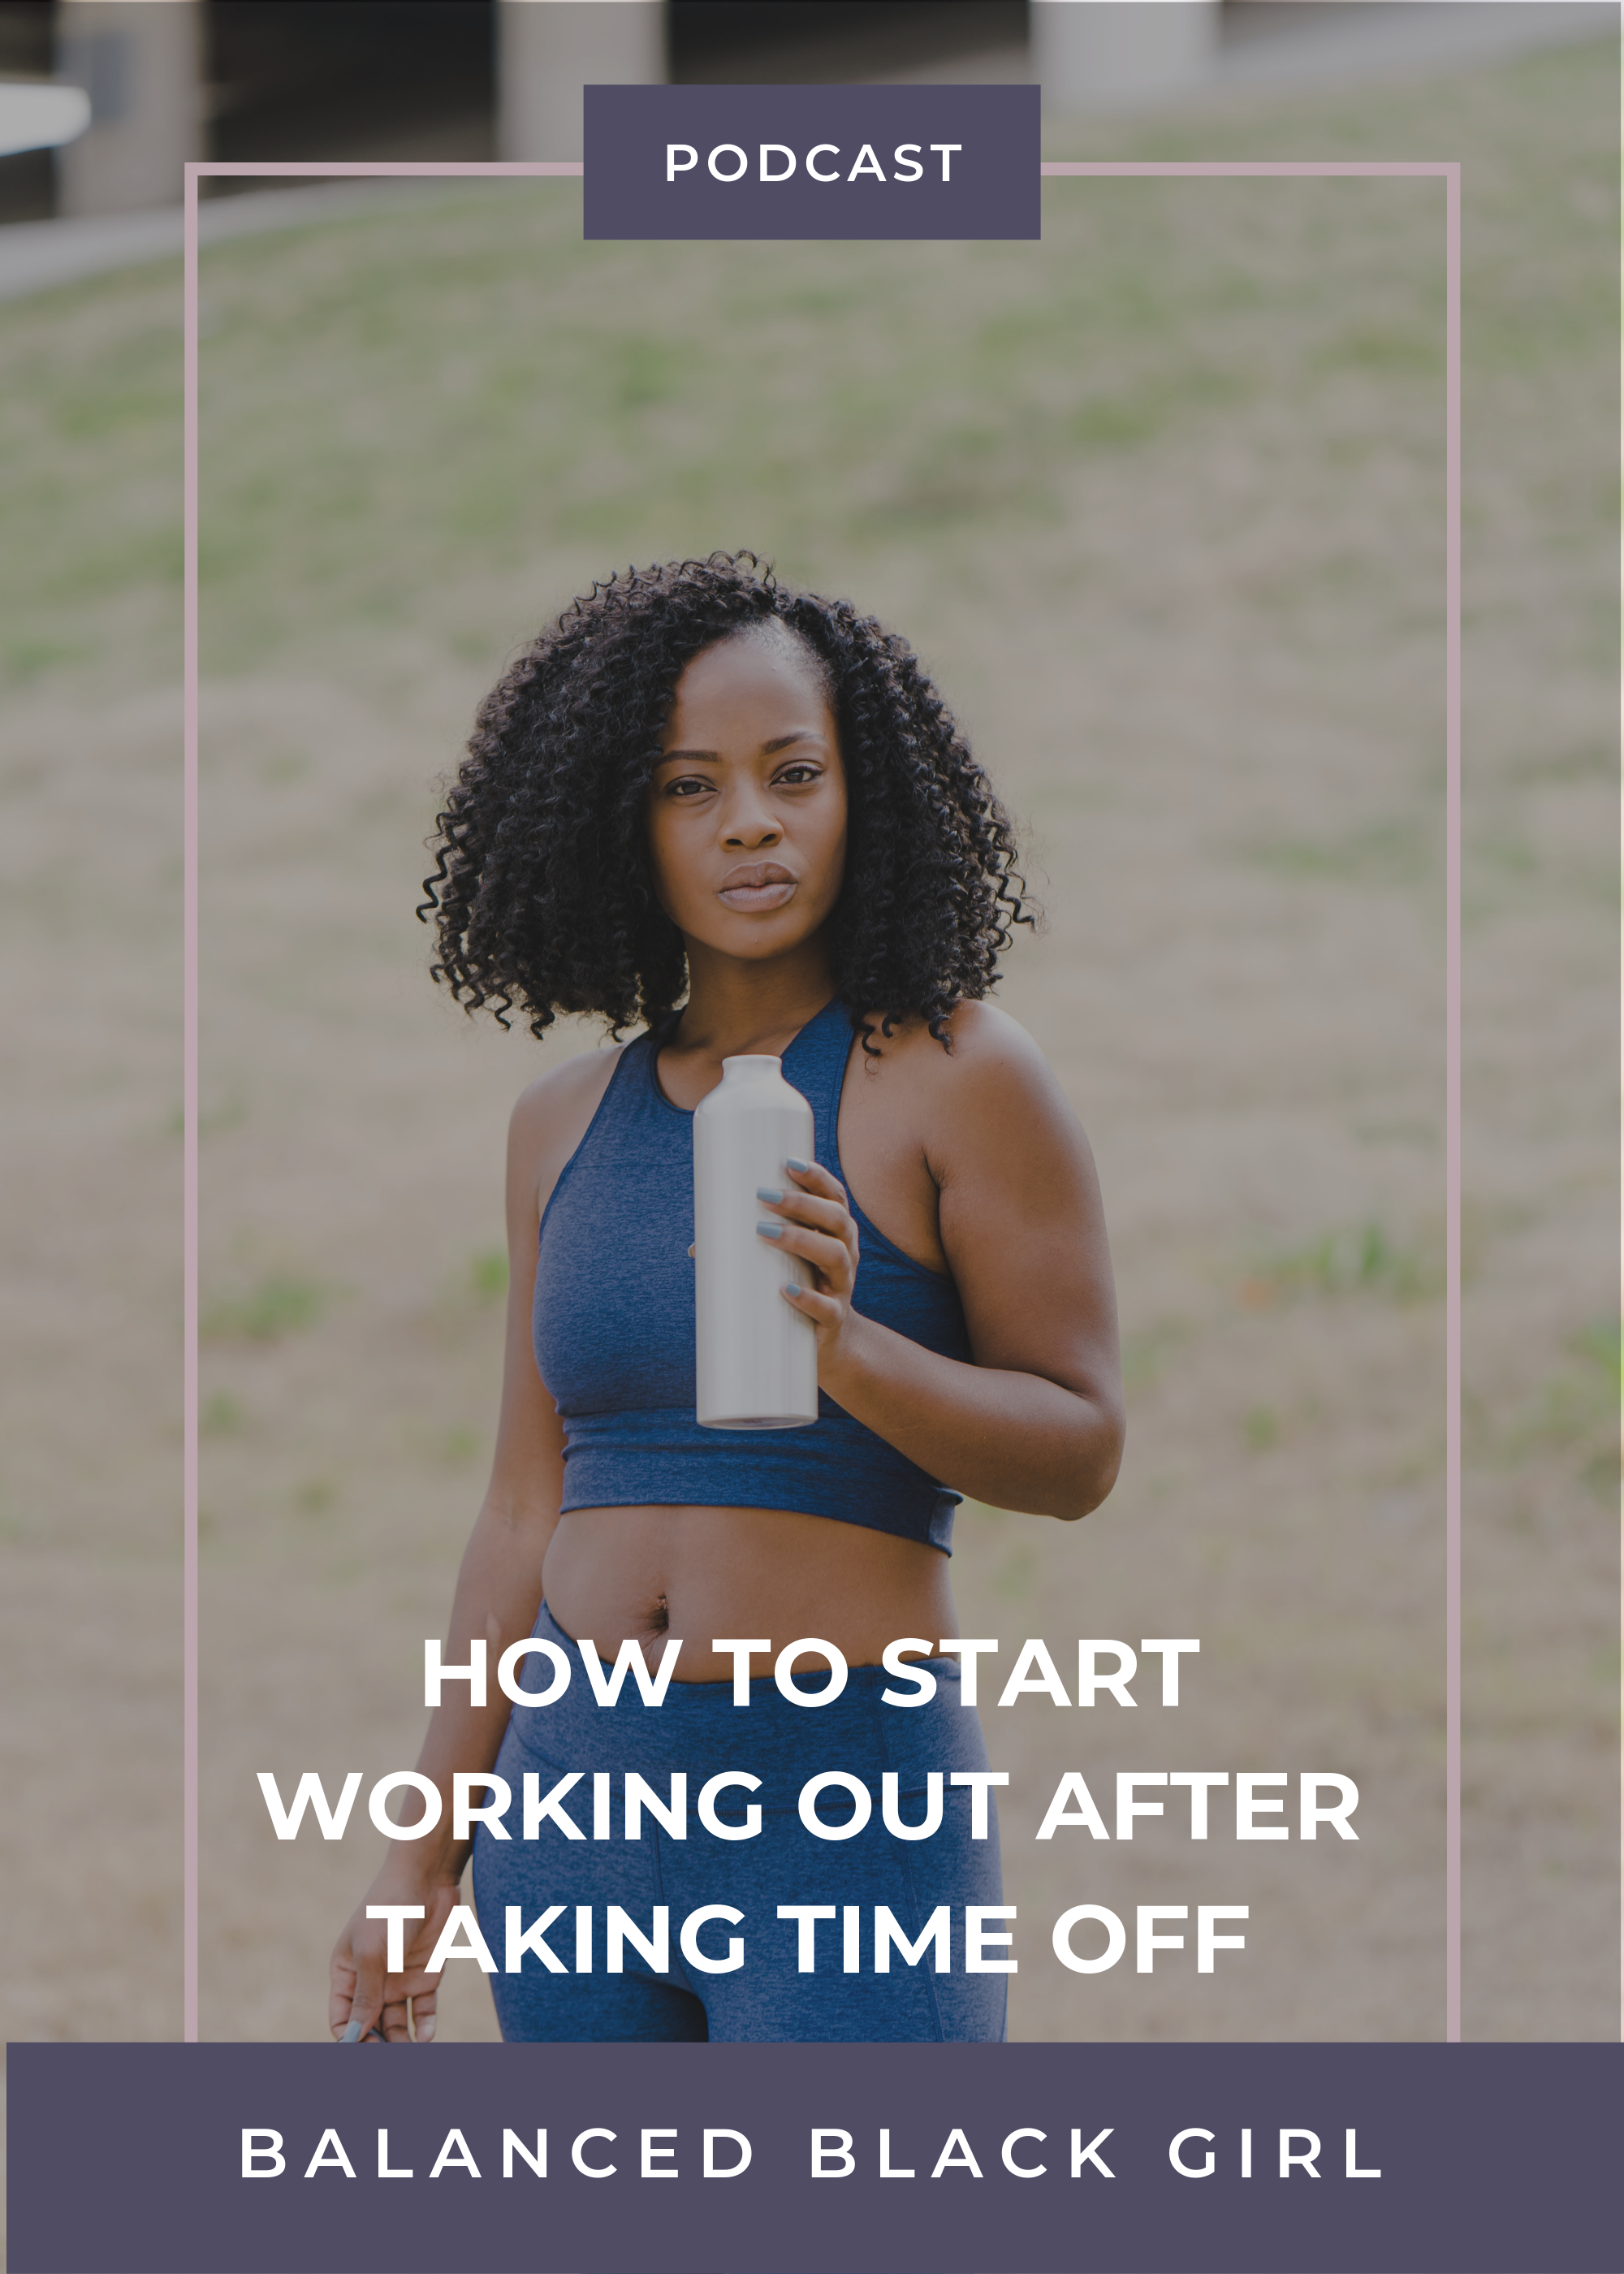 How to Start Working Out After Taking Time Off | Balanced Black Girl Podcast